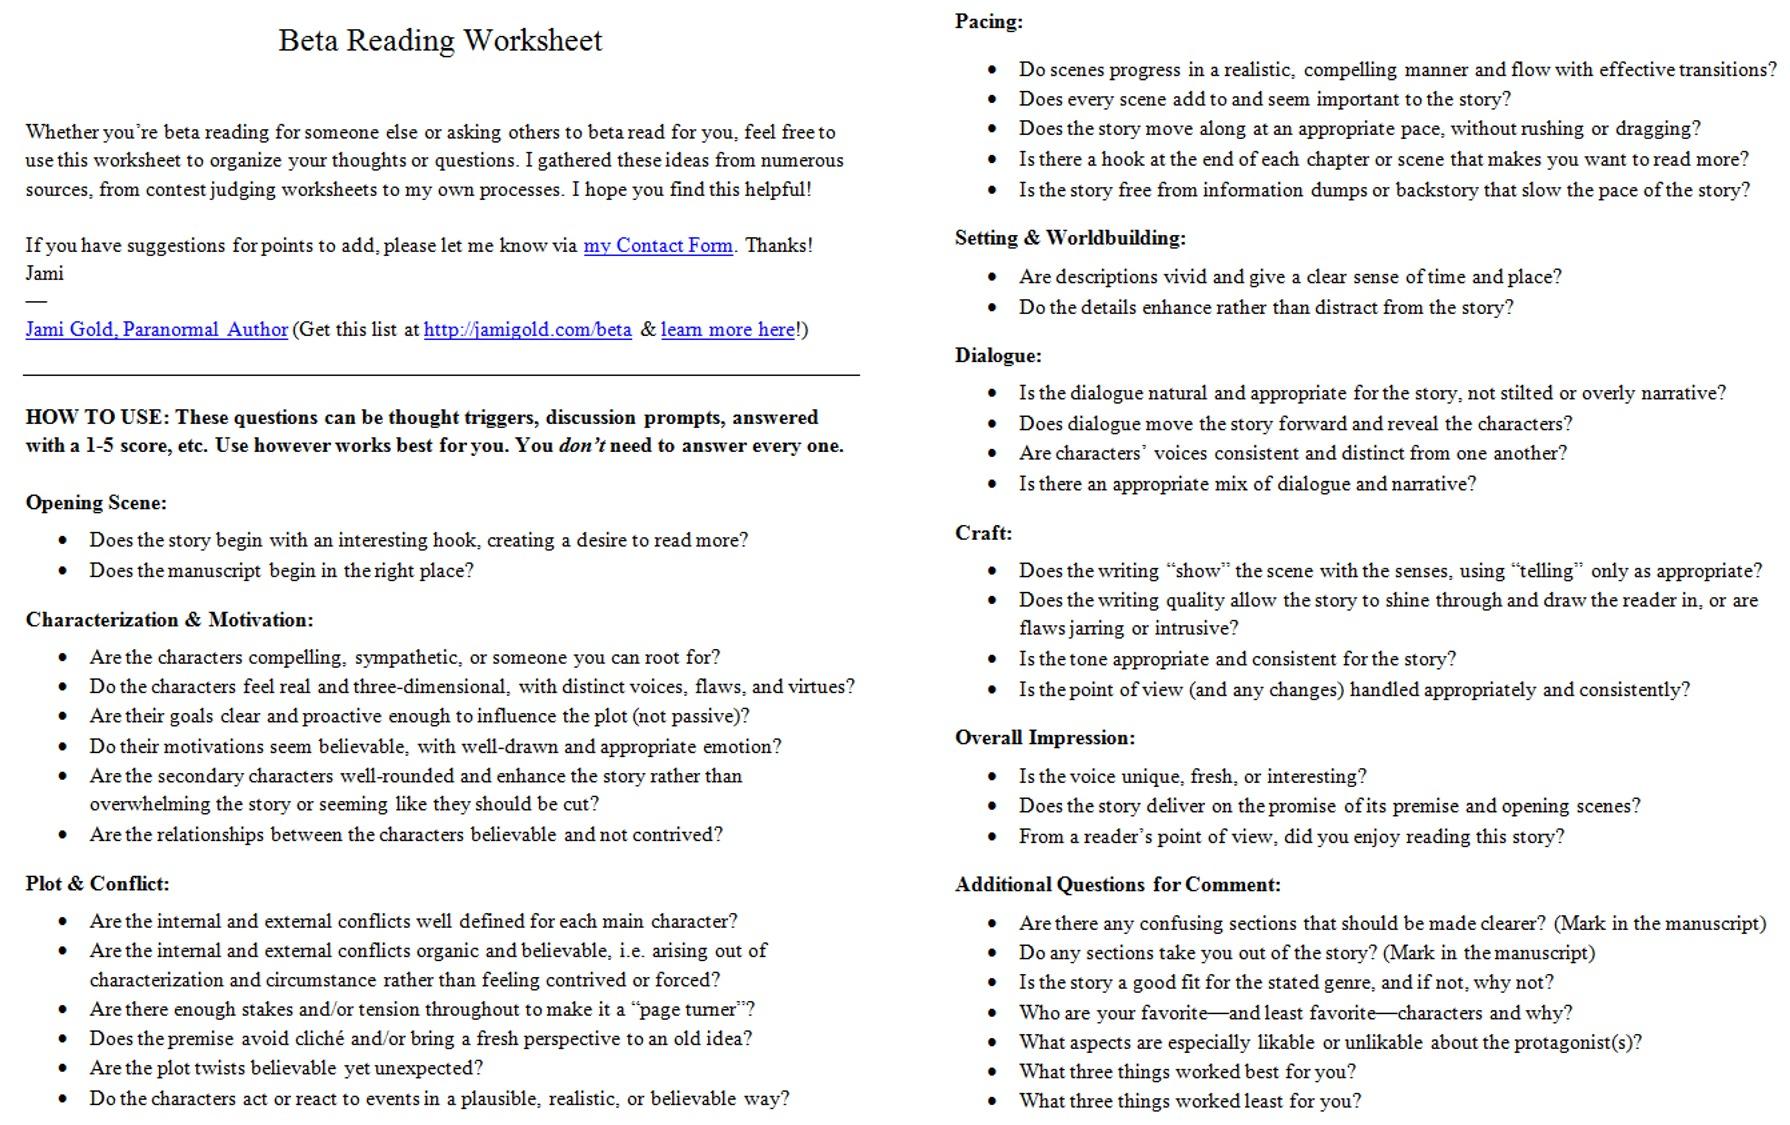 Proatmealus  Nice Worksheets For Writers  Jami Gold Paranormal Author With Fascinating Screen Shot Of The Twopage Beta Reading Worksheet With Captivating Small Business Budget Worksheet Also Meiosis And Mitosis Worksheet In Addition  Worksheet And Your Life Your Money Worksheet As Well As What Plants Need To Grow Worksheet Additionally Context Clues Worksheet Th Grade From Jamigoldcom With Proatmealus  Fascinating Worksheets For Writers  Jami Gold Paranormal Author With Captivating Screen Shot Of The Twopage Beta Reading Worksheet And Nice Small Business Budget Worksheet Also Meiosis And Mitosis Worksheet In Addition  Worksheet From Jamigoldcom